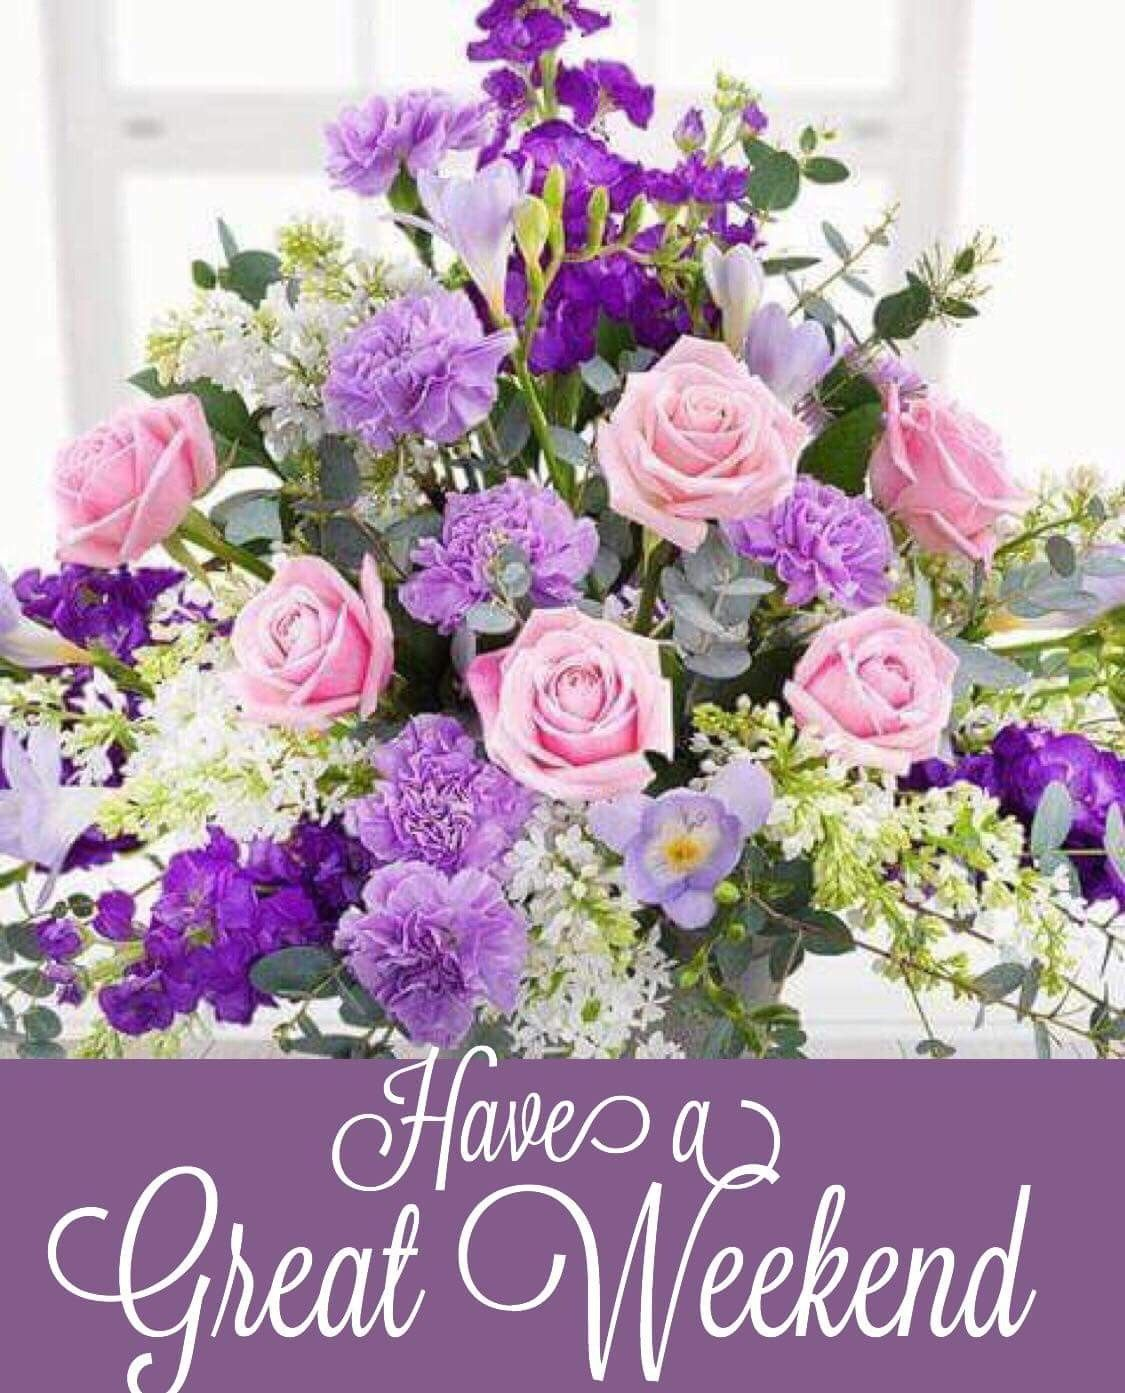 Easter Flowers Wedding: Pin By Dorothy Thurow- Konle-Haskell On Bible Art